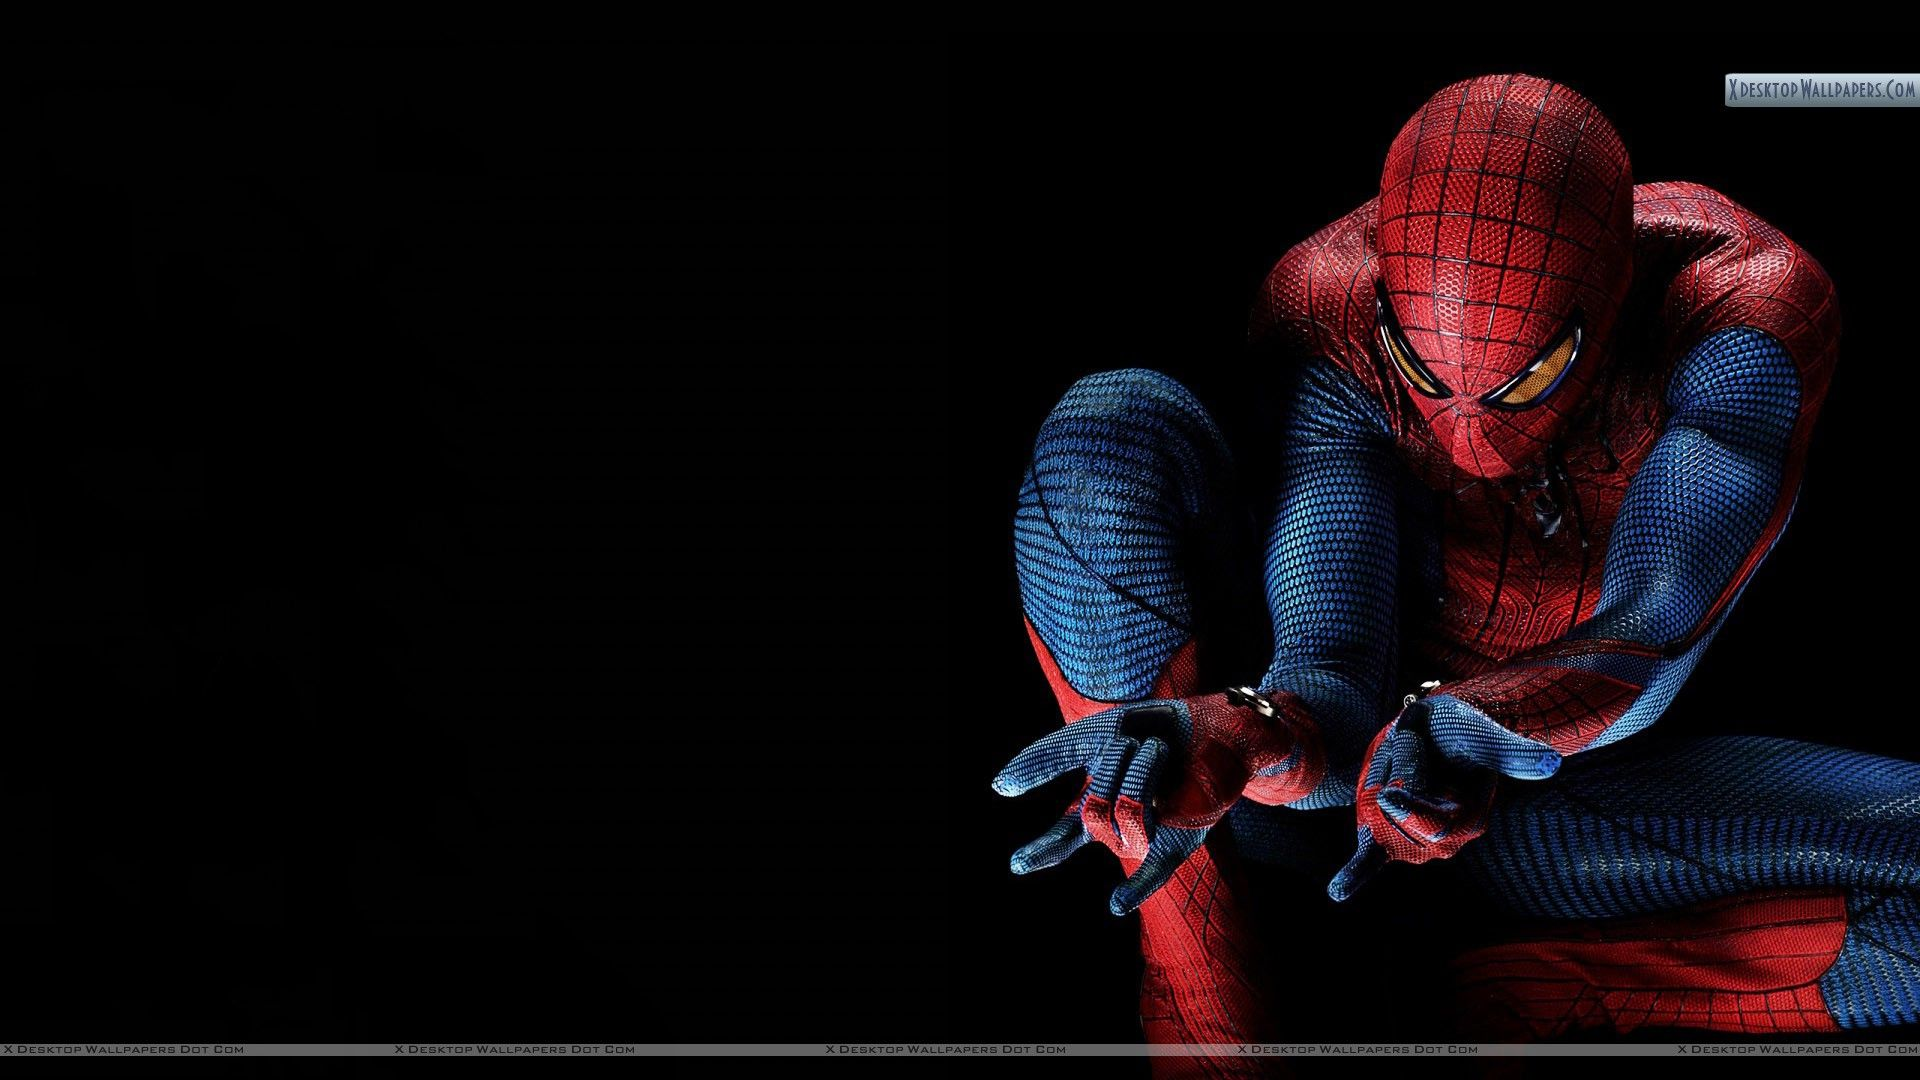 Spiderman Wallpaper with 1920x1080 Resolution spiderman